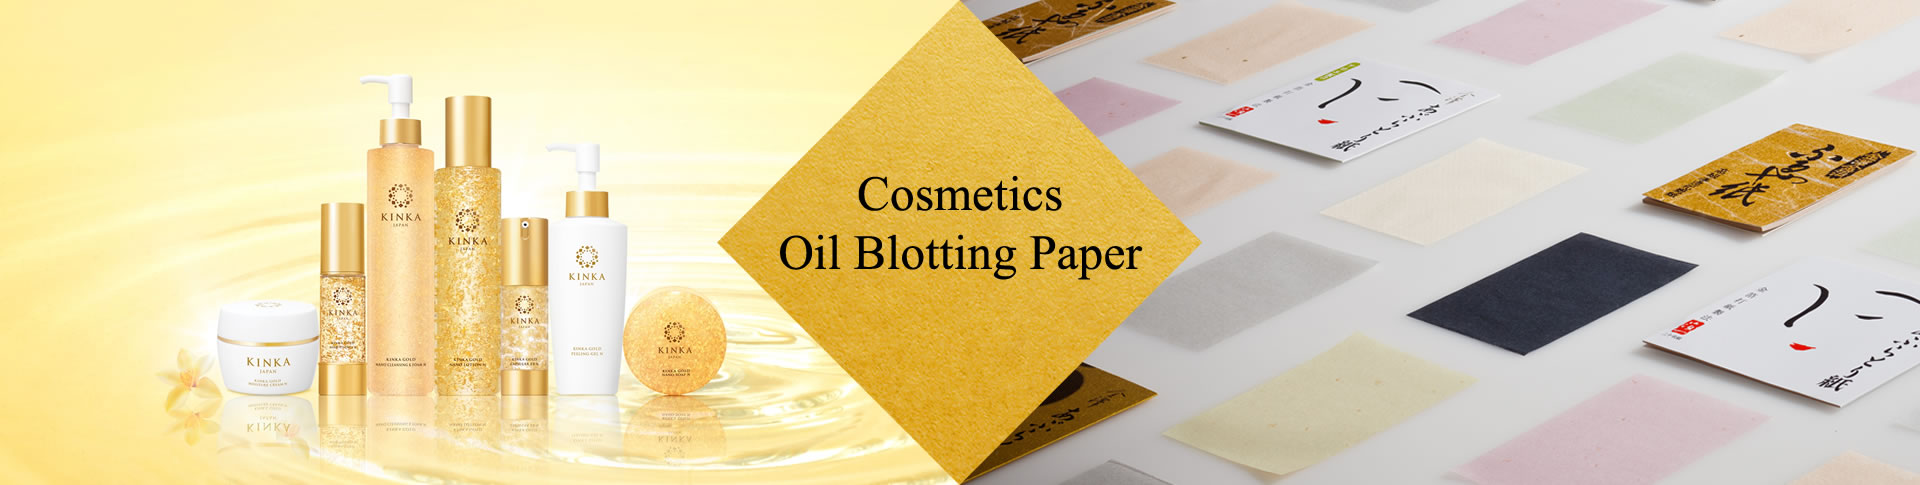 Cosmetics Oil Blotting Paper